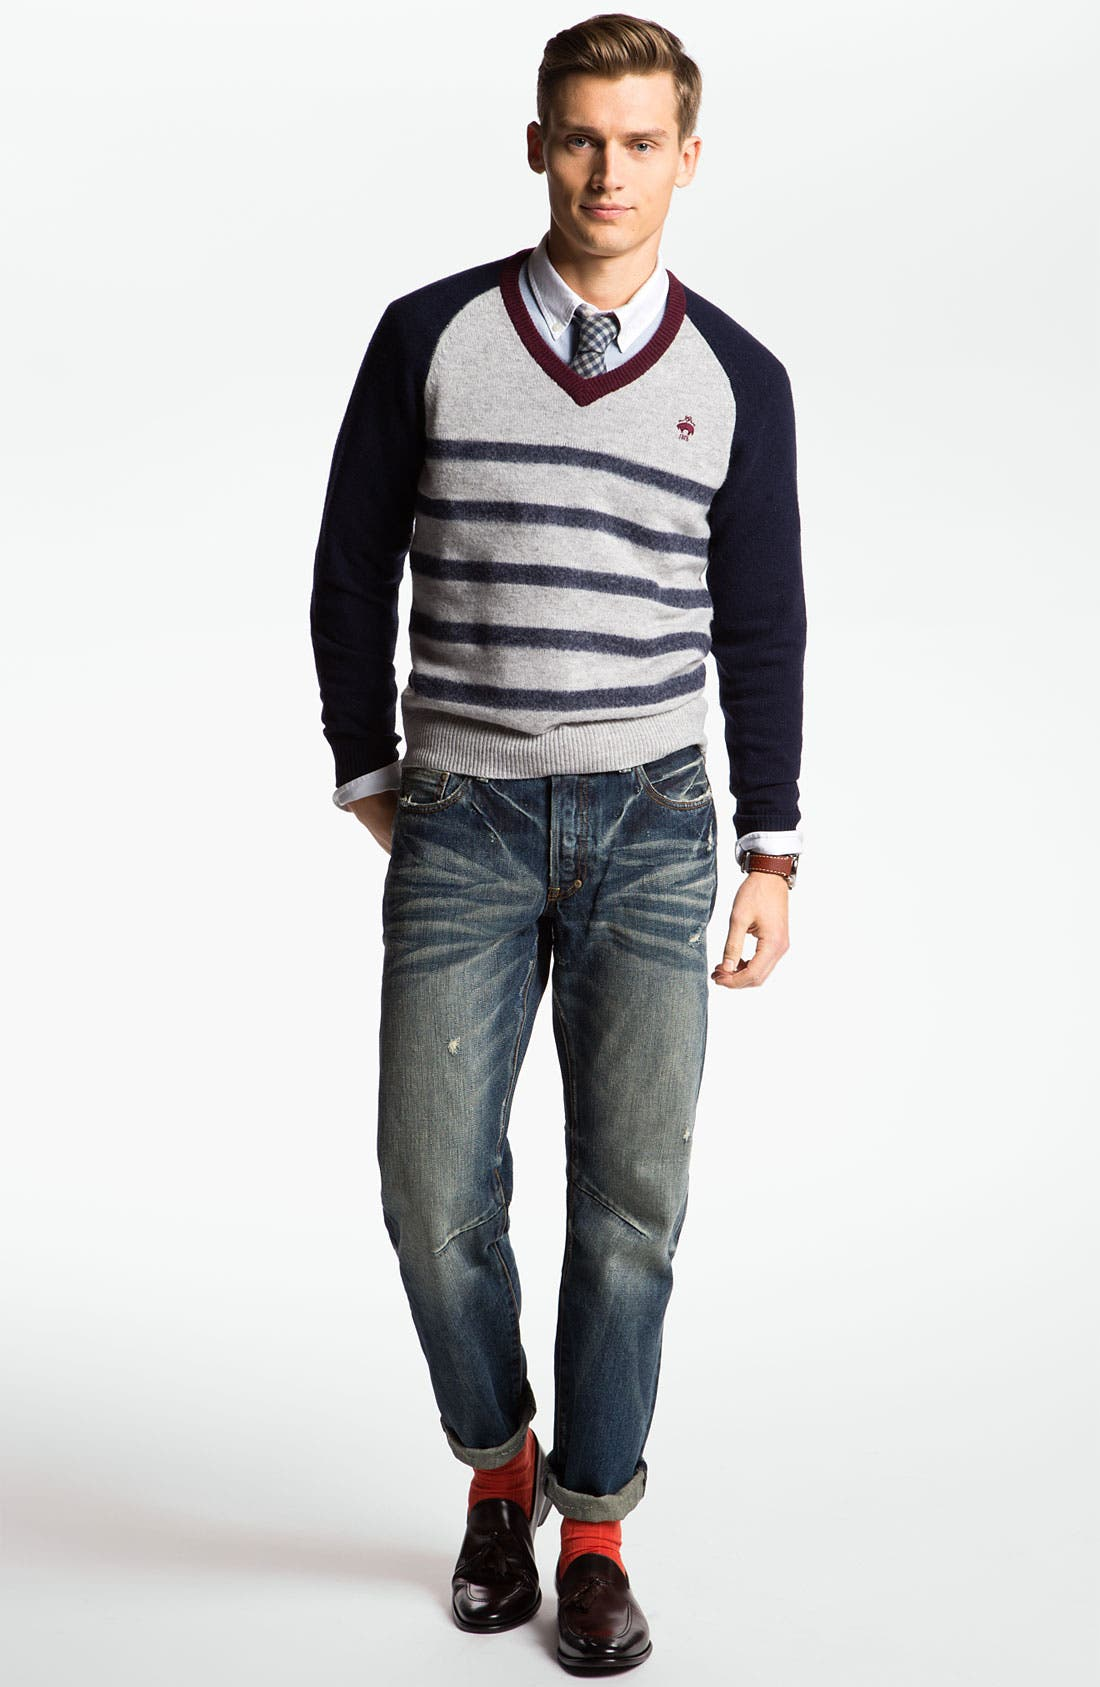 Alternate Image 1 Selected - Brooks Brothers Sweater, Oxford Shirt & PRPS Straight Leg Jeans